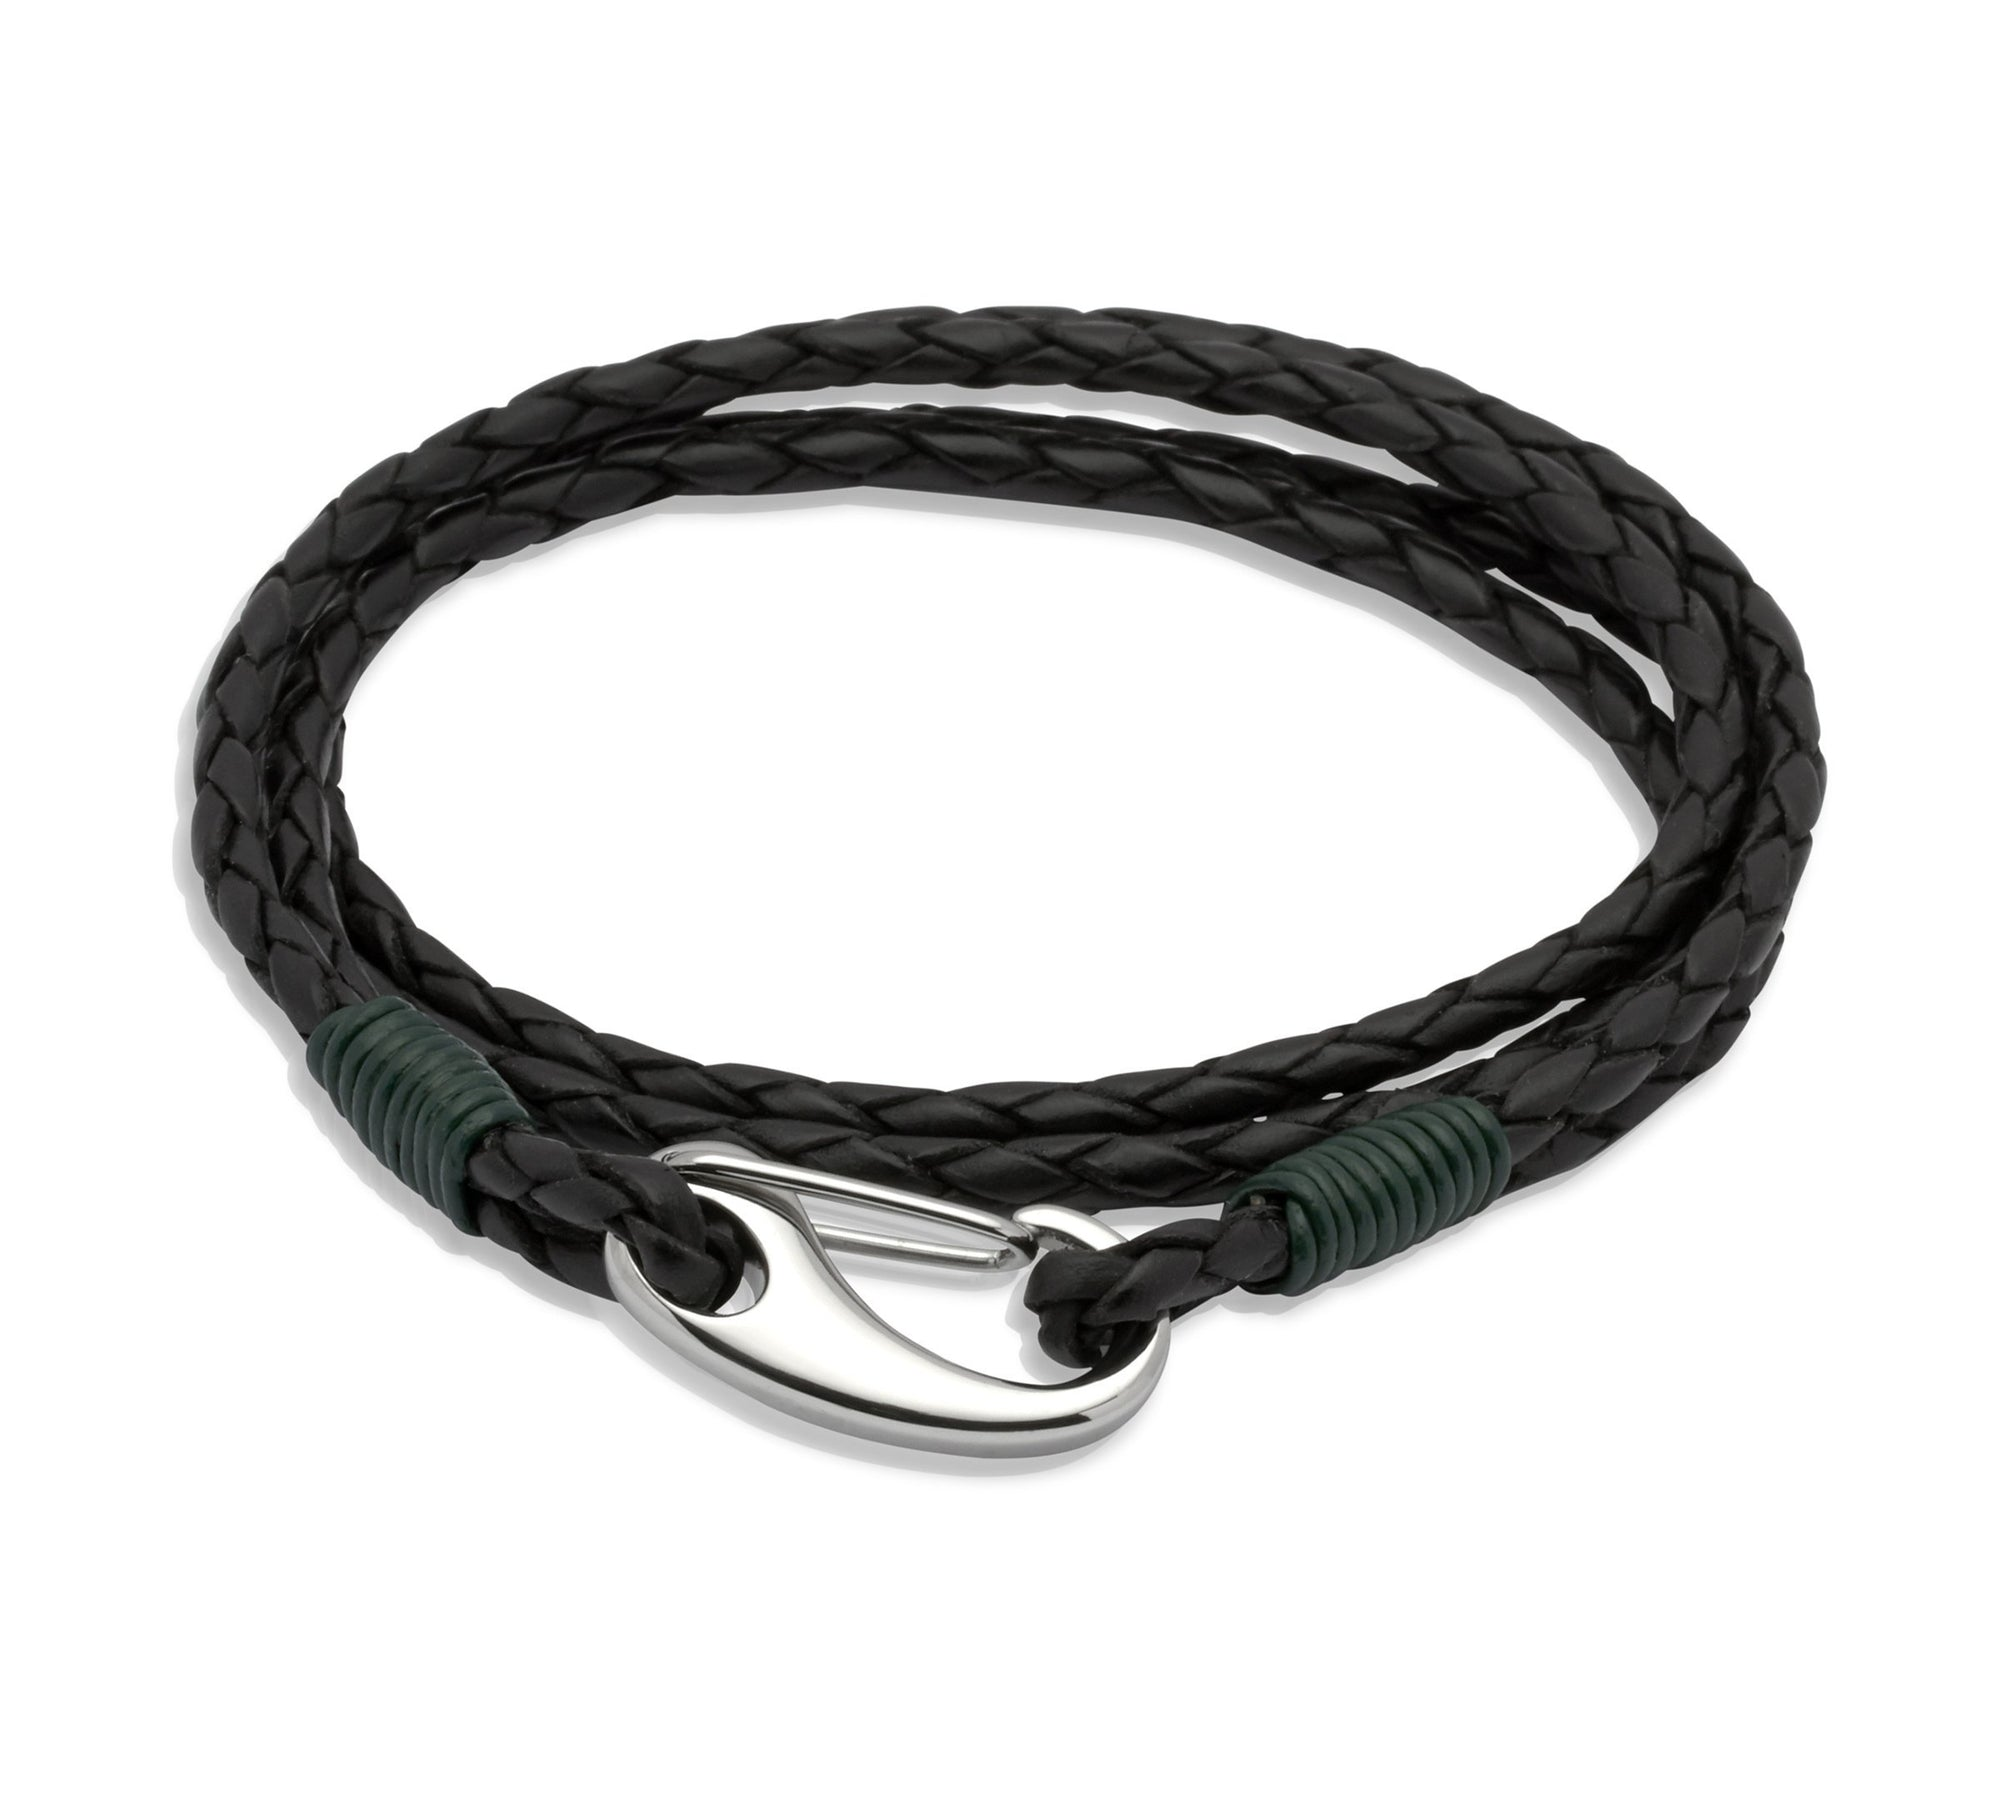 Mens Double Strand Wrap-Around Leather Bracelet in Black and Dark Green binding